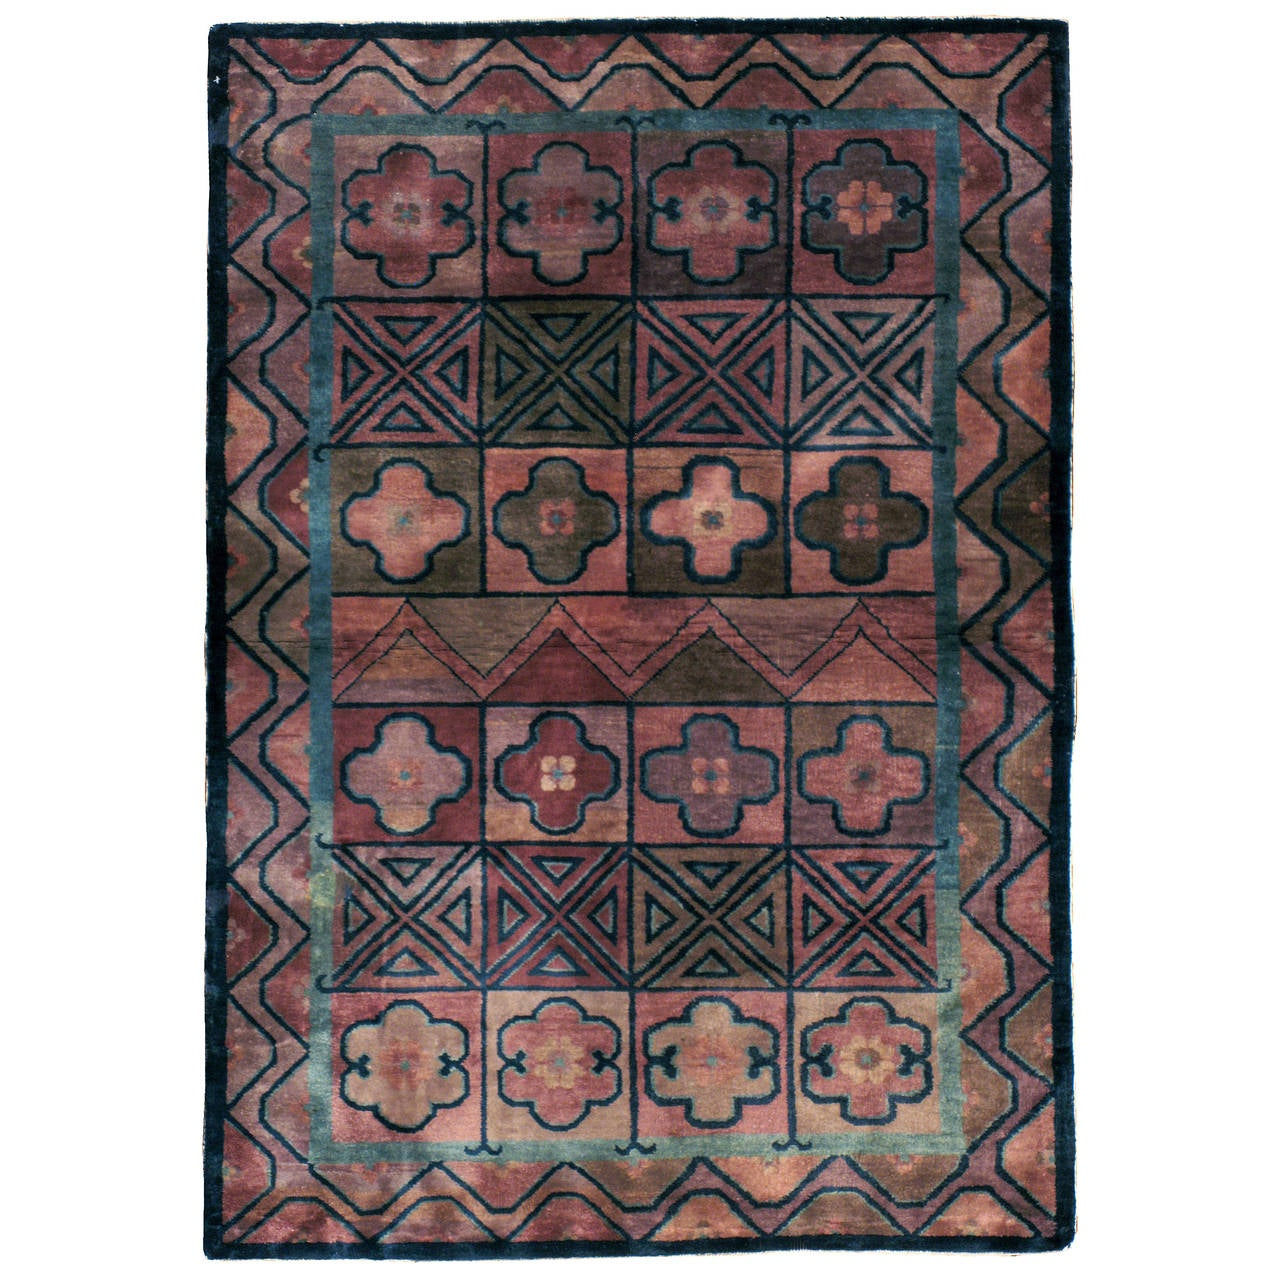 Antique Chinese Art Deco Rug For Sale At 1stdibs